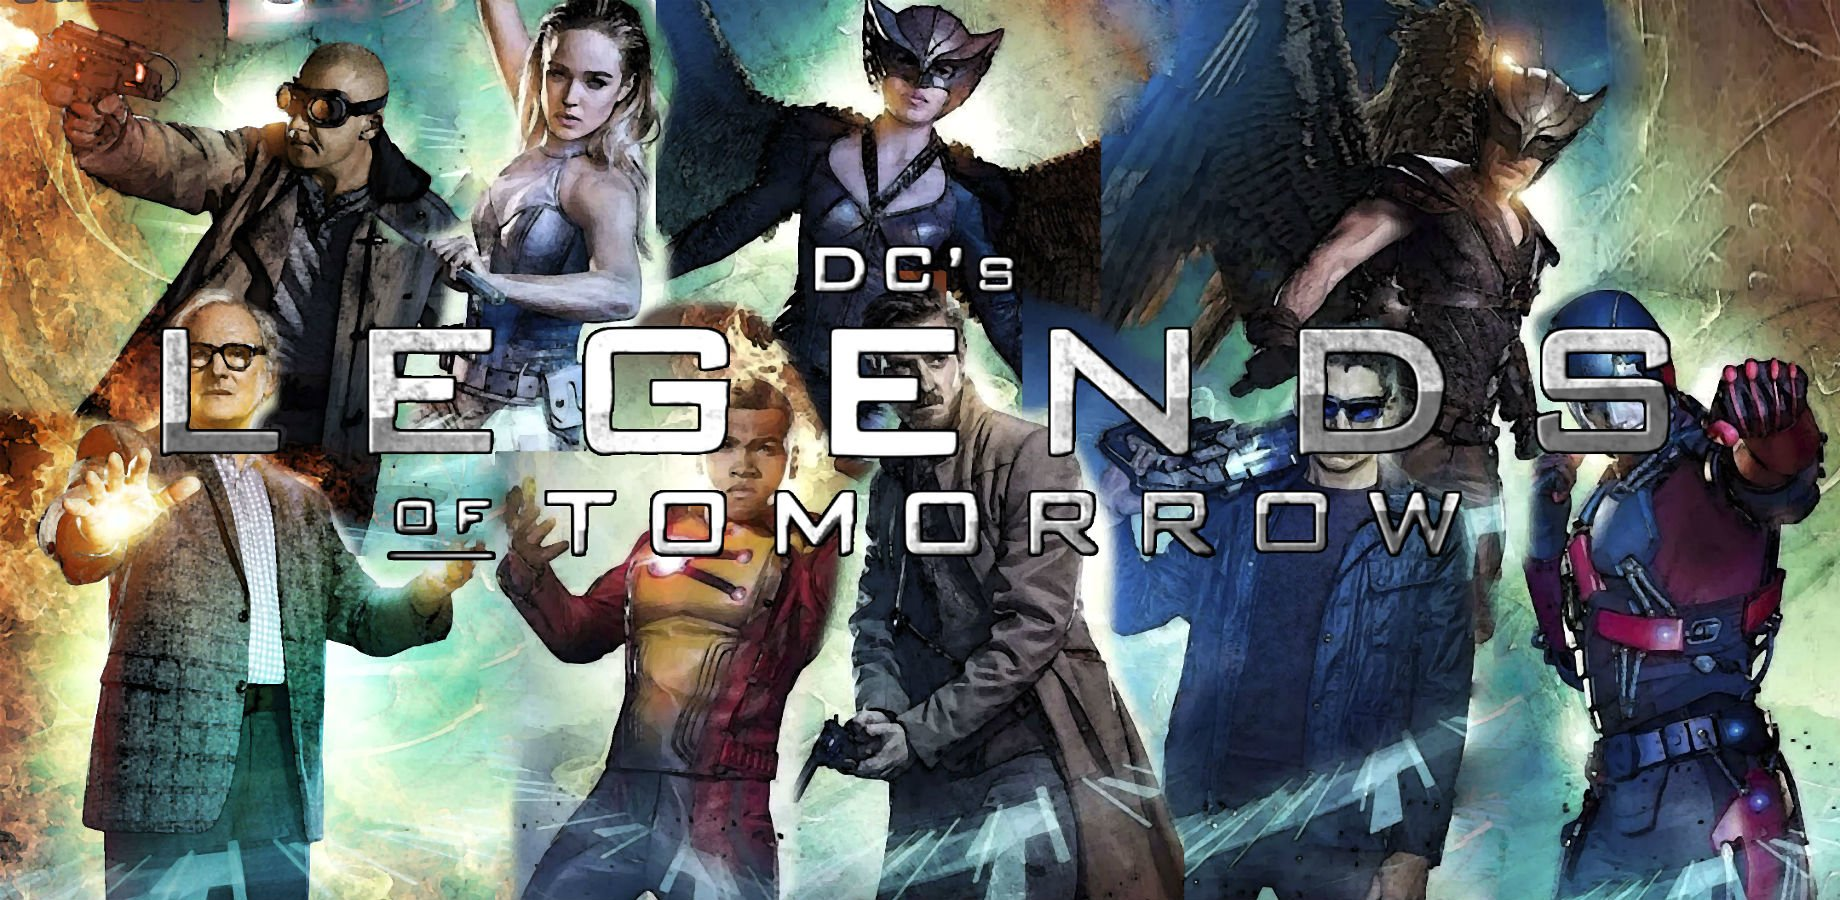 TV Show - DC's Legends Of Tomorrow  Heat Wave (DC Comics) White Canary (DC Comics) Hawkgirl Hawkman Martin Stein Firestorm (Comics) Rip Hunter Captain Cold Atom (DC Comics) Wallpaper